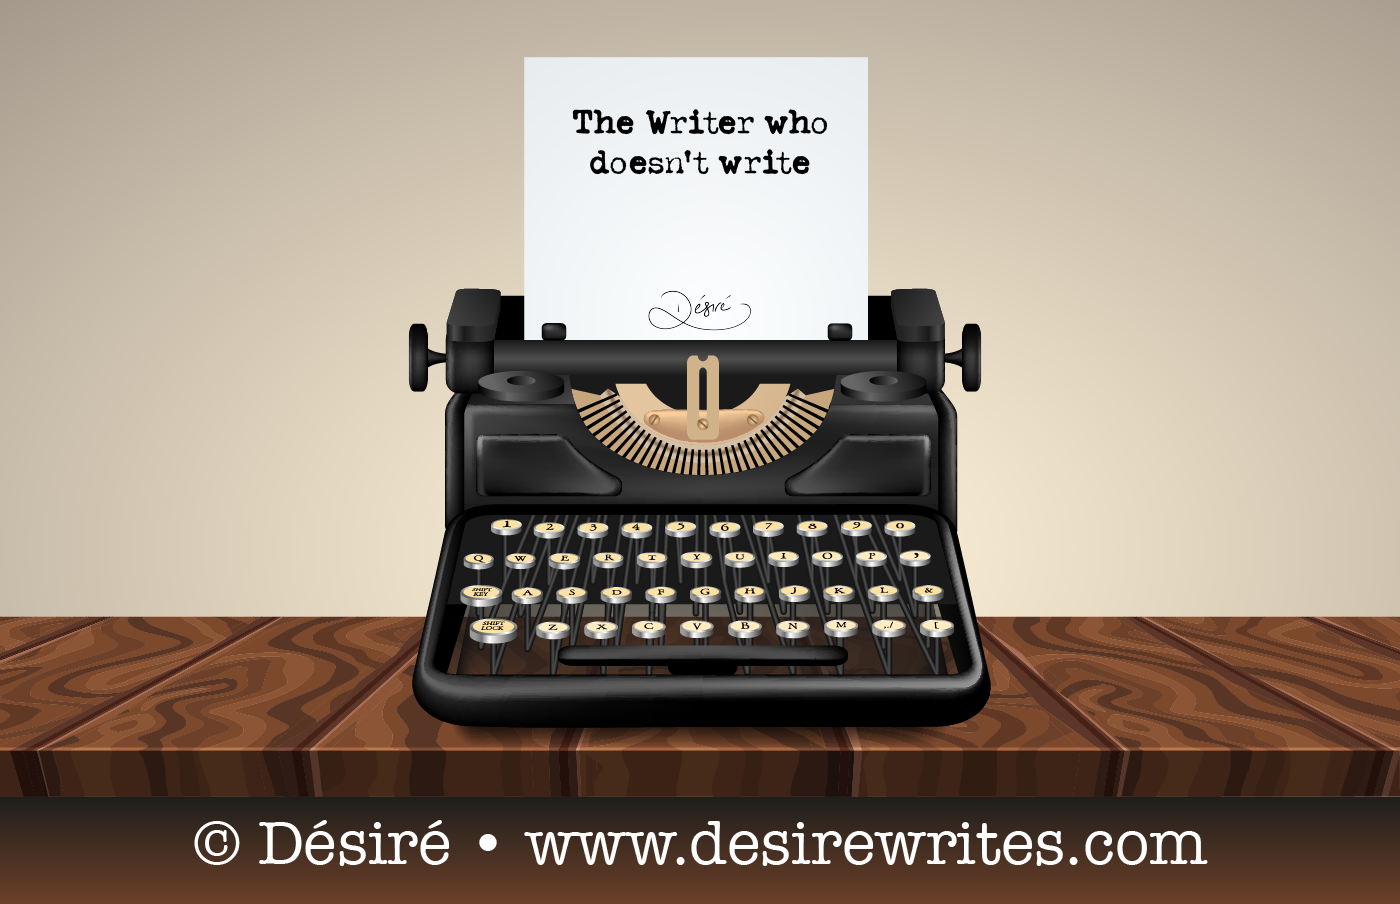 The Writer who doesn't write